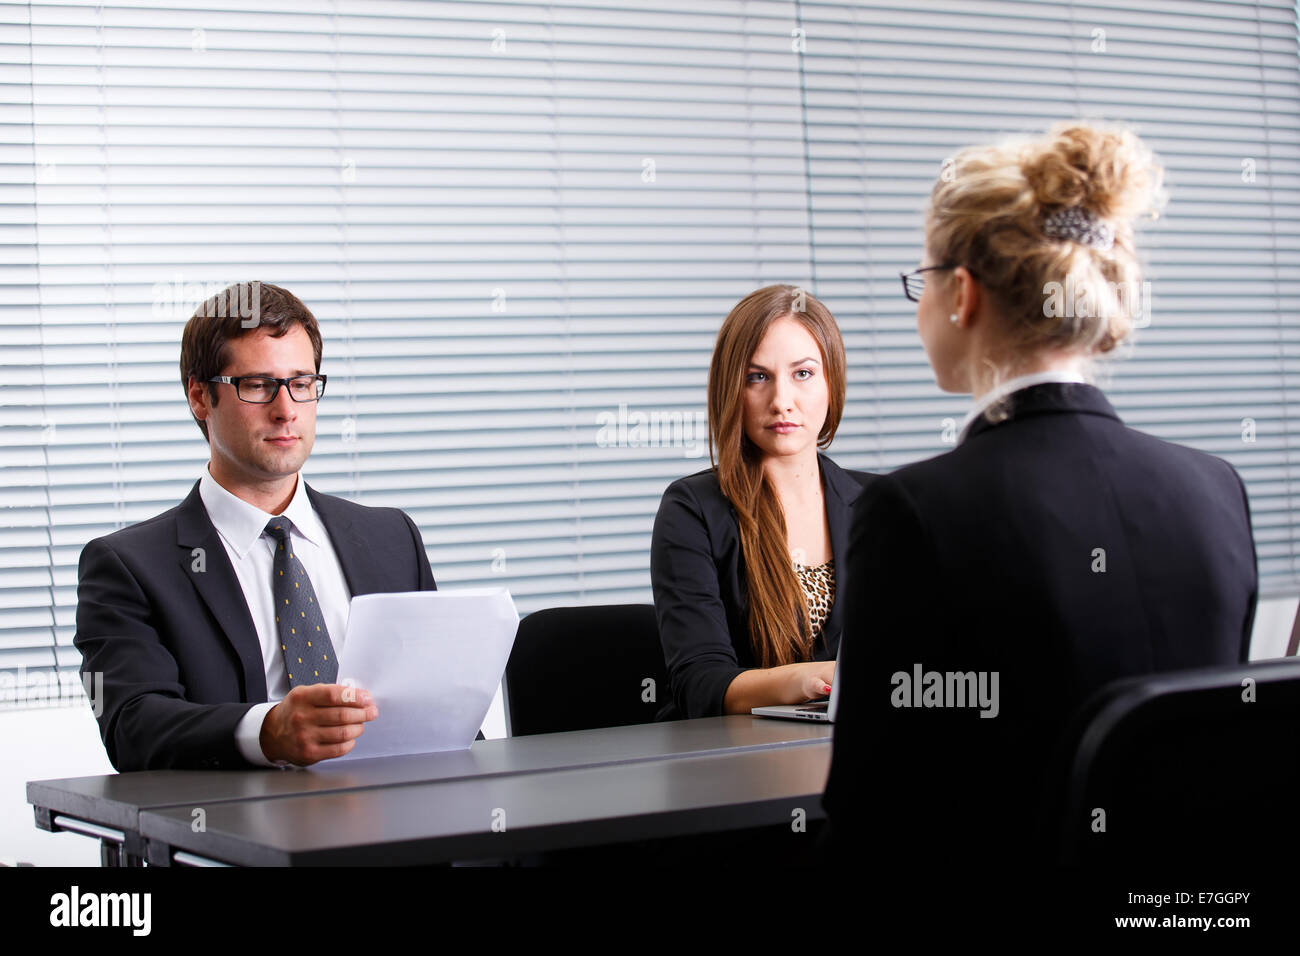 Work interview - Stock Image